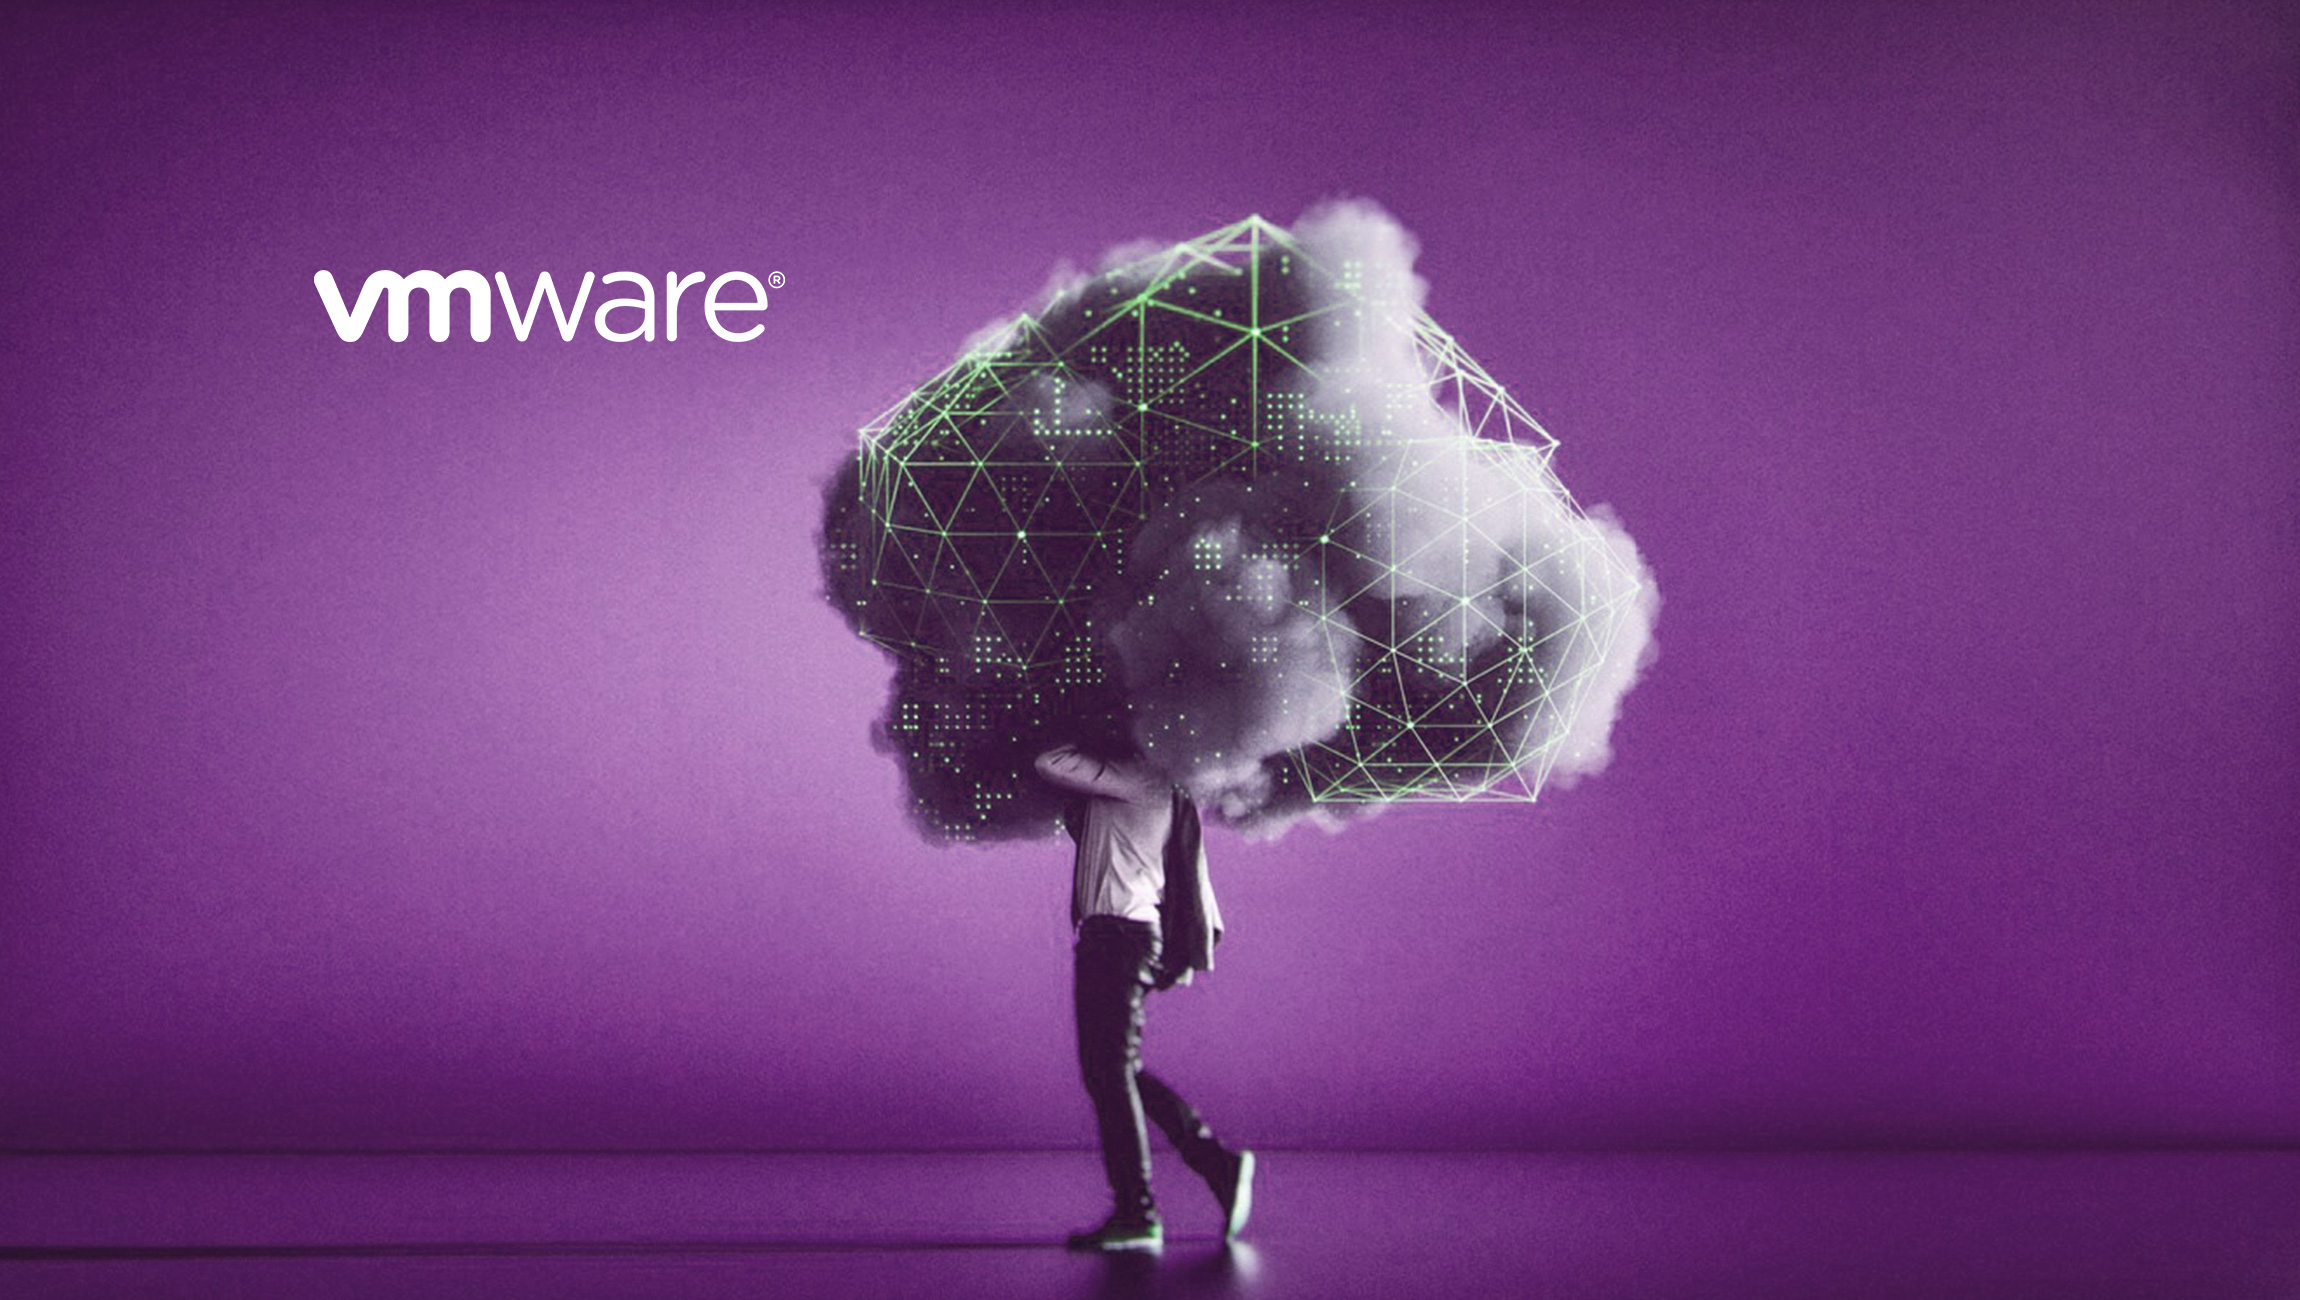 VMware's Twin-Acquisition Deal Bolsters Big Data-Based Cloud Computing And Security